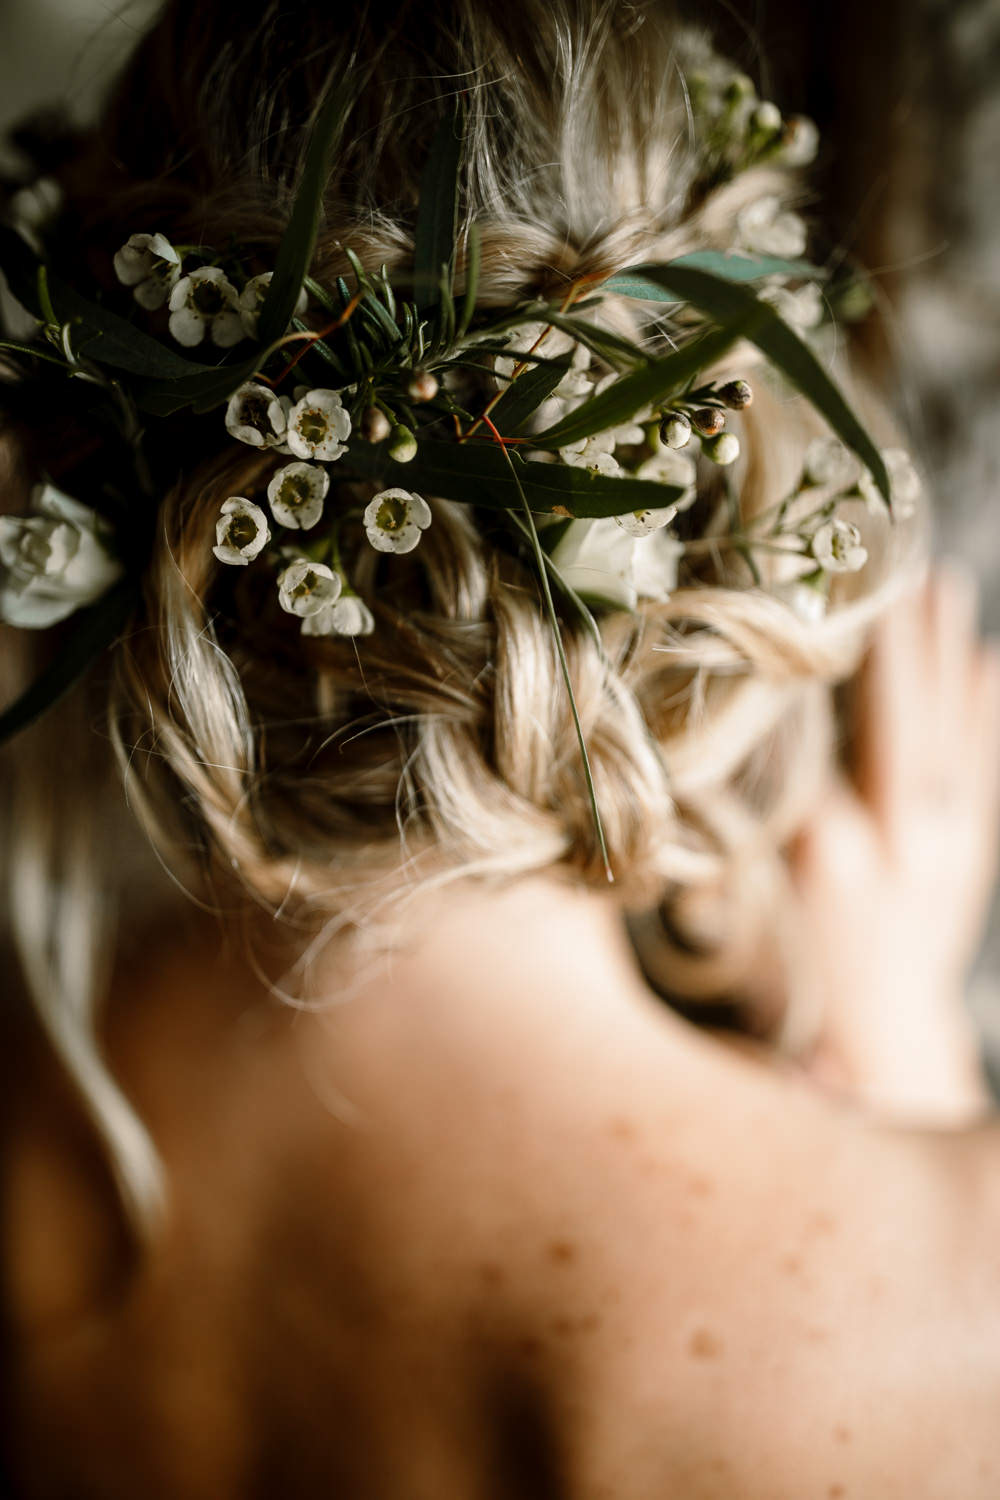 Hair Style Up Do Bride Bridal Flowers Floral Waves Plait Braid Blossom Barn Wedding Ideas Hayley Baxter Photography